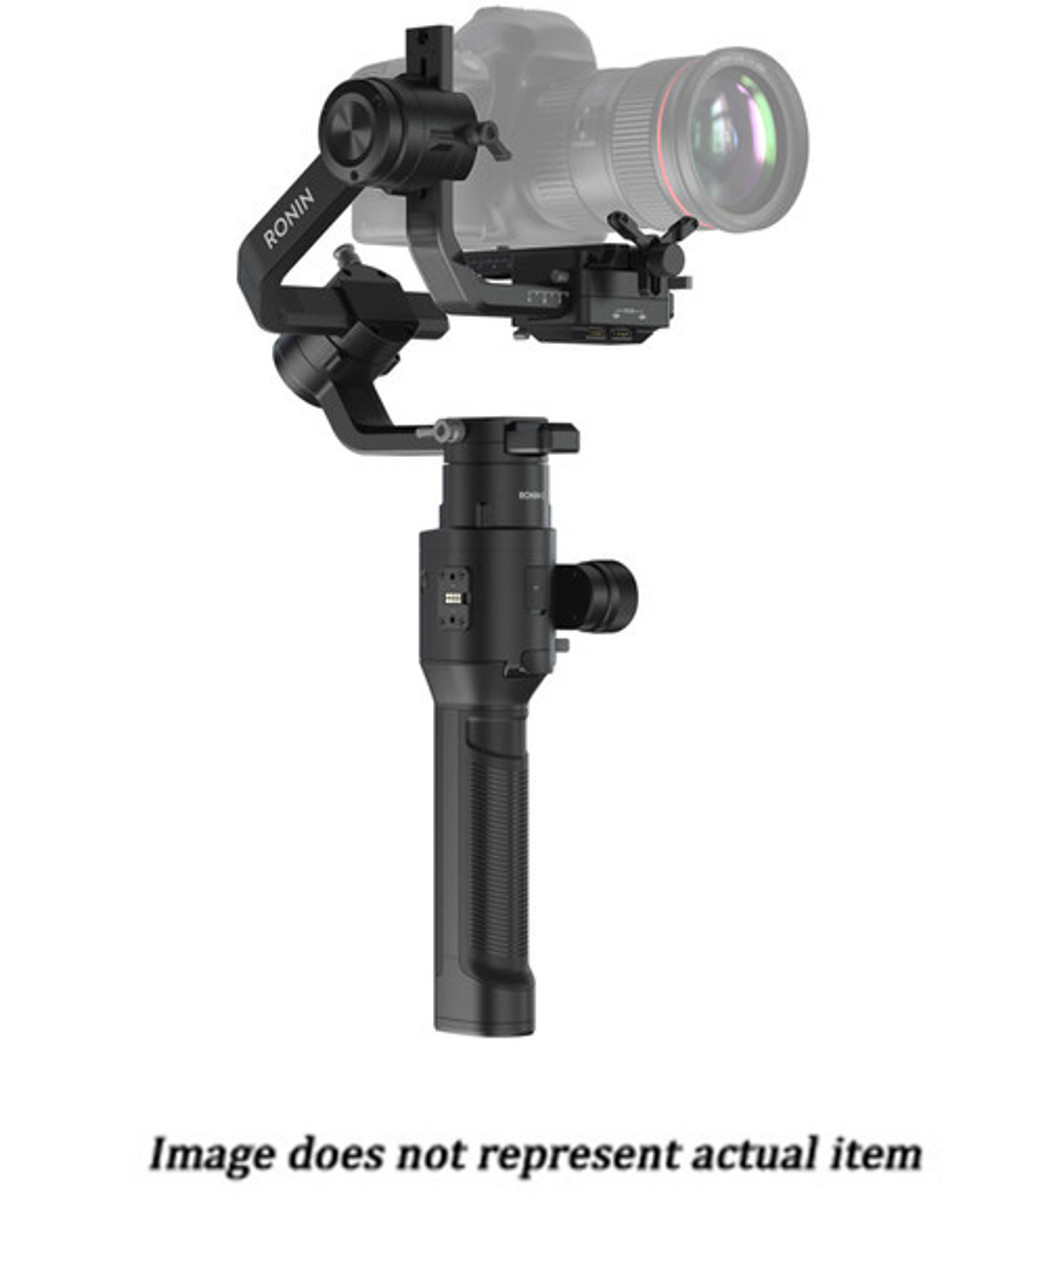 DJI Innovations Ronin-S (REFURBISHED)